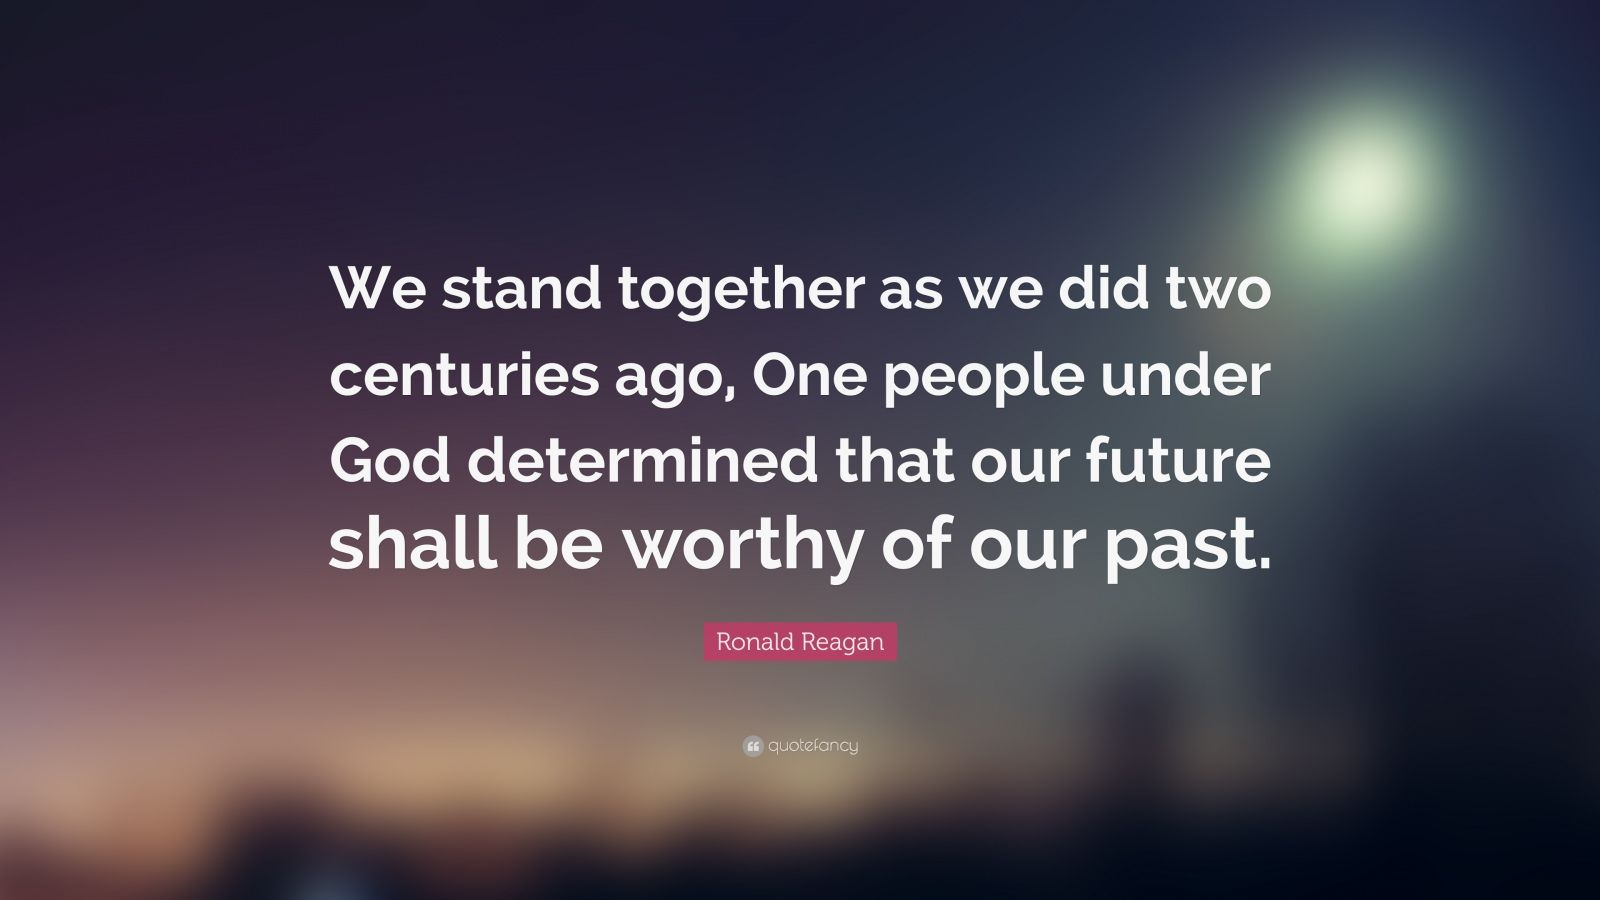 """Ronald Reagan Quote: """"We stand together as we did two centuries ago, One people under God determined that our future shall be worthy of our past."""""""